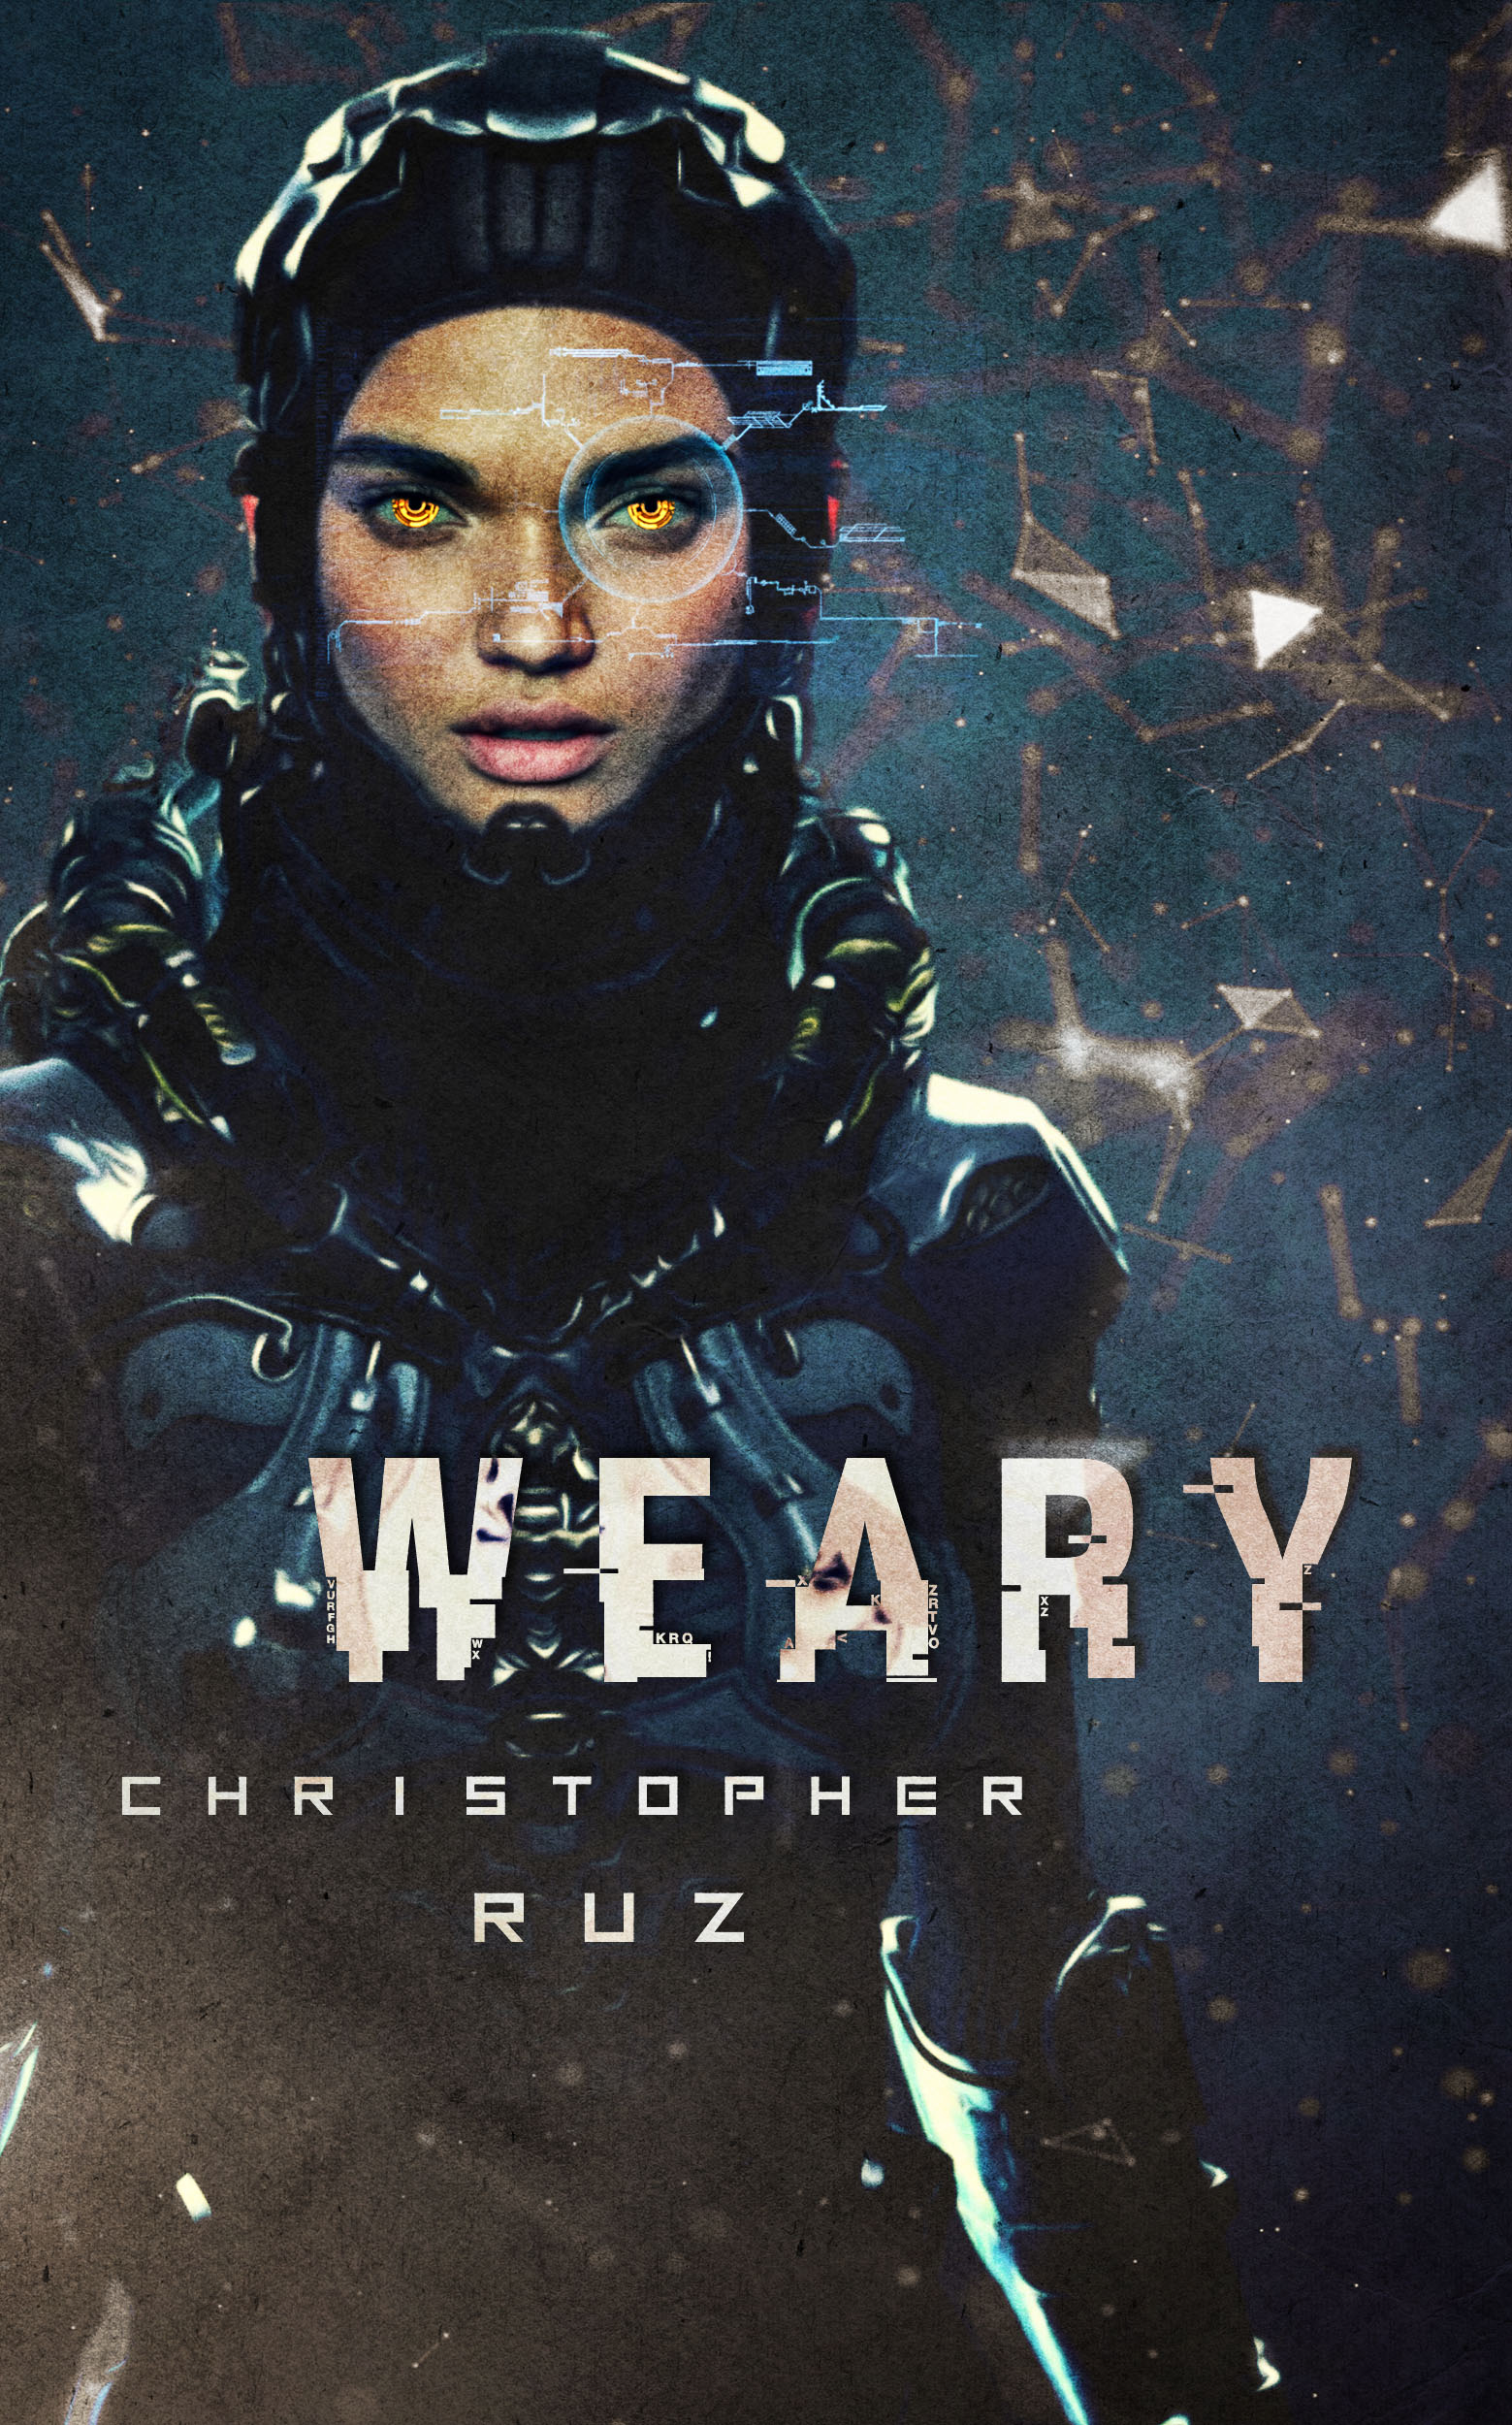 Link to Weary by Christopher Ruz